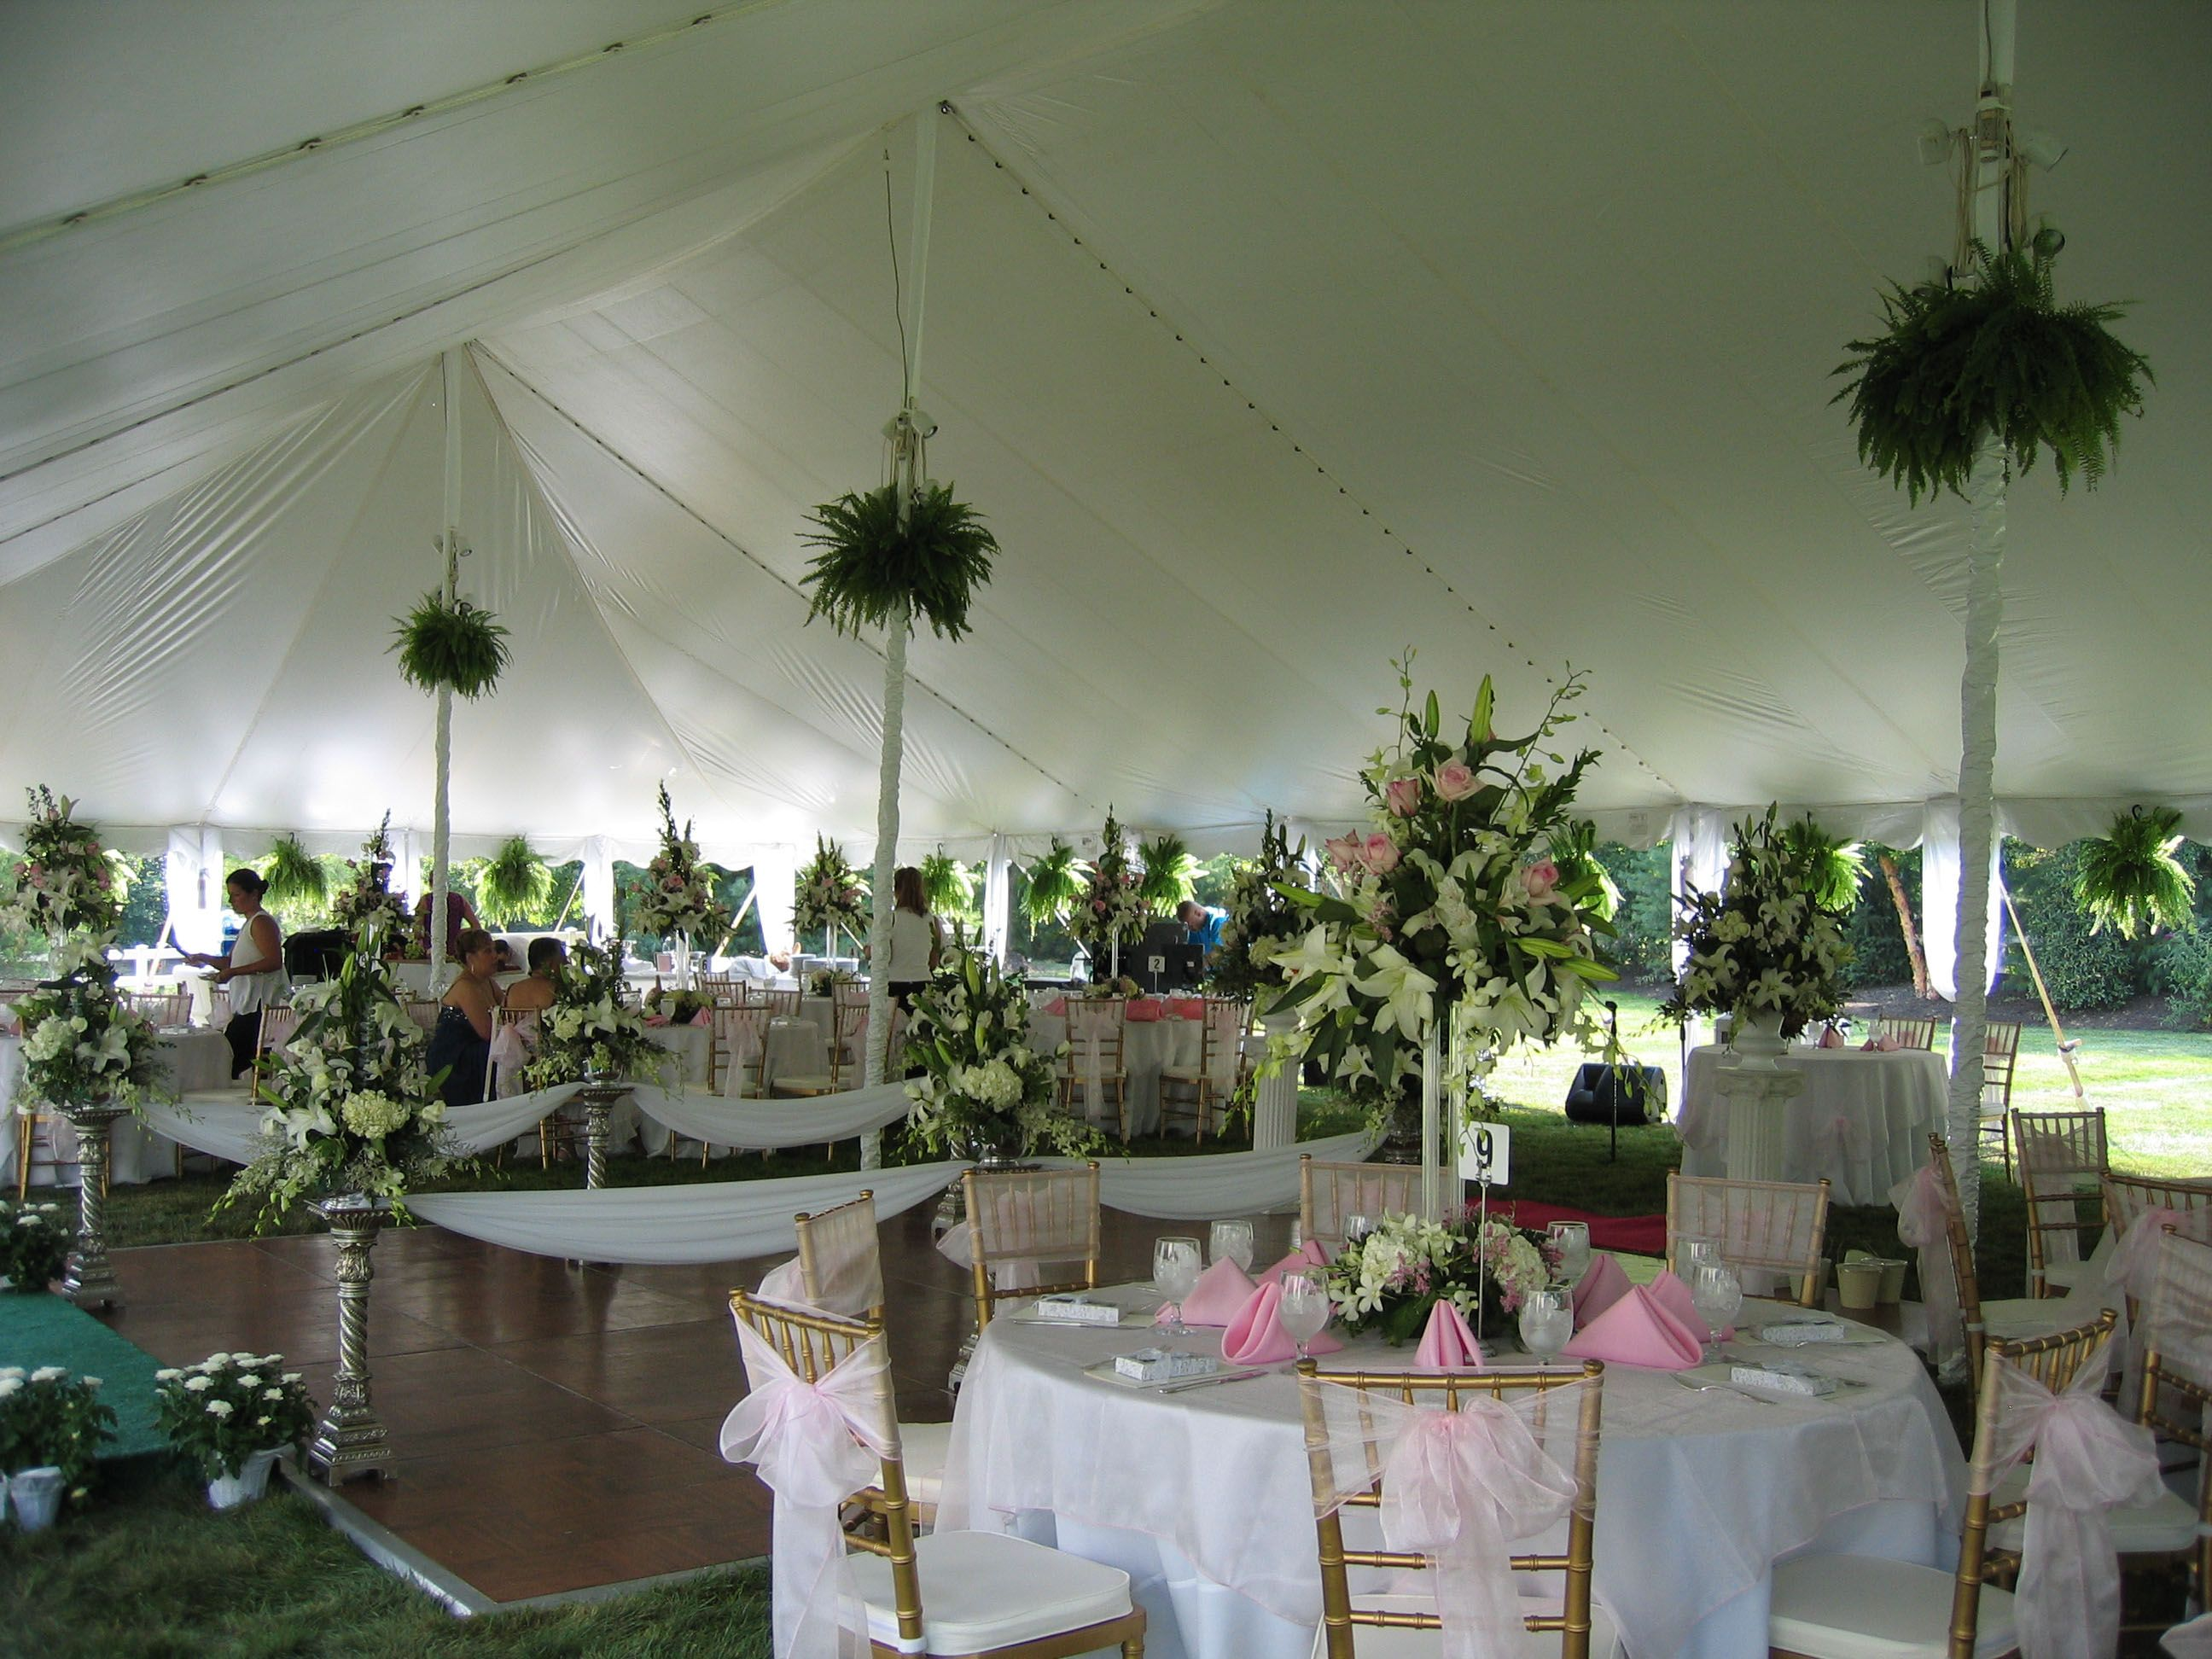 wedding tents   Pole Tents Center Poles as interior supports provide this style tent . & wedding tents   Pole Tents: Center Poles as interior supports ...